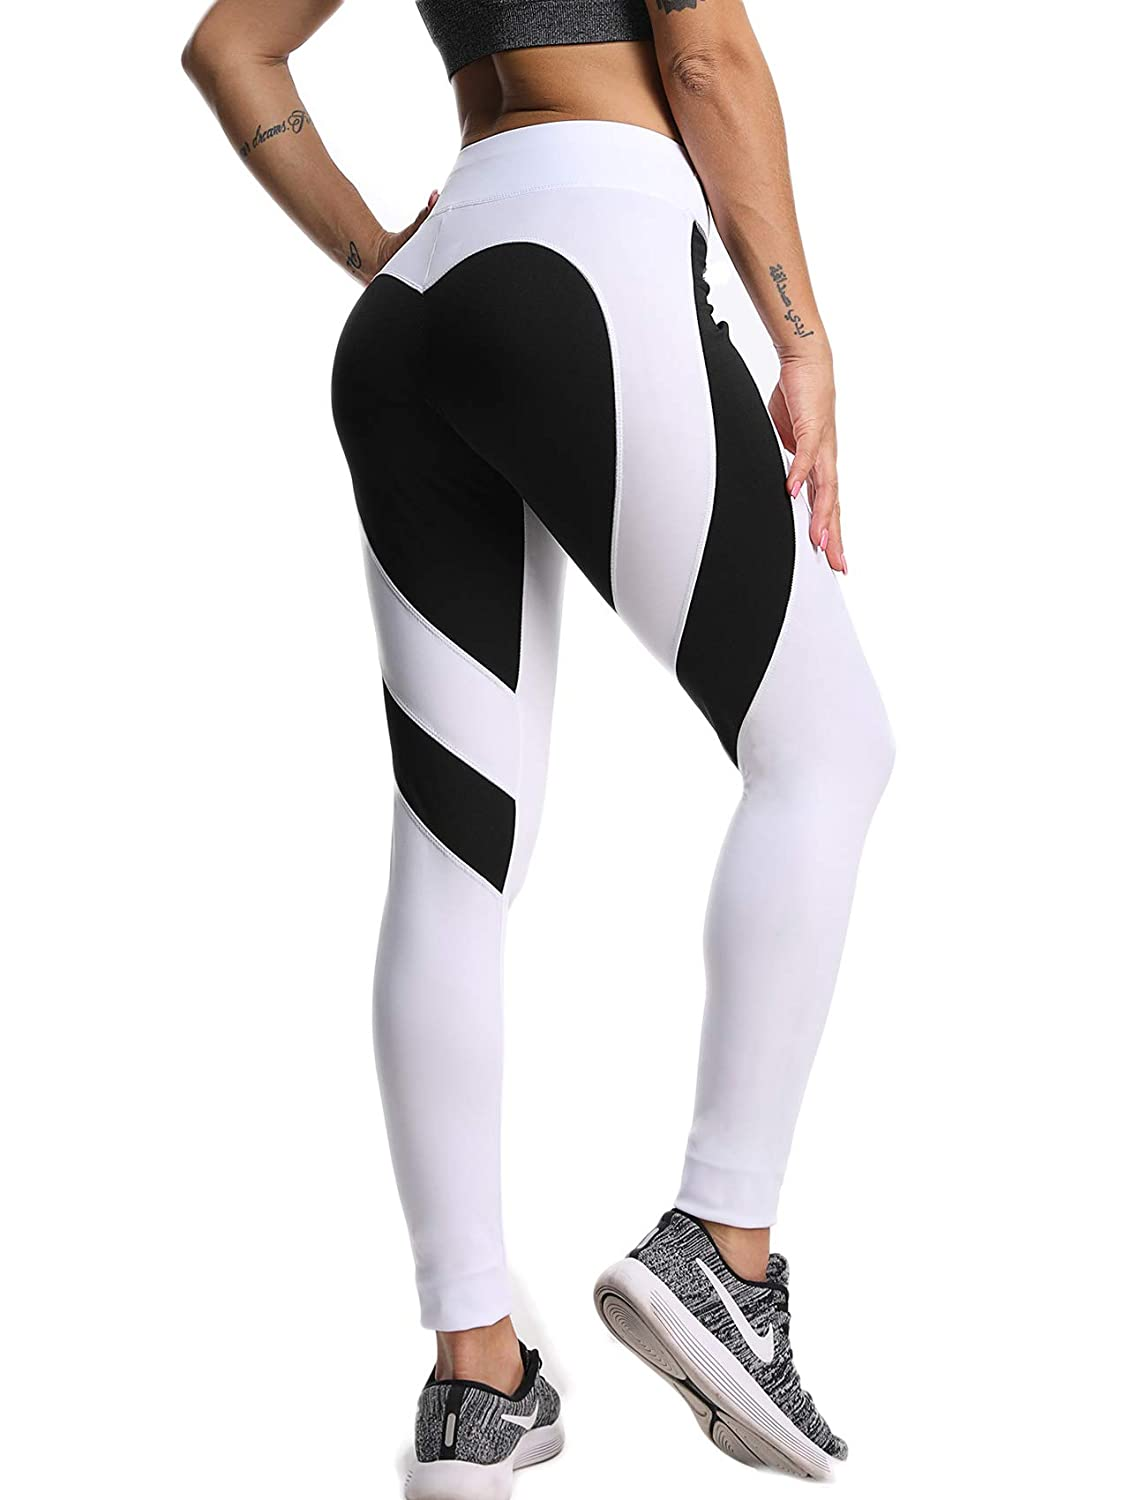 8ad258edf6a Top 10 wholesale Female Leggings And Tights - Chinabrands.com